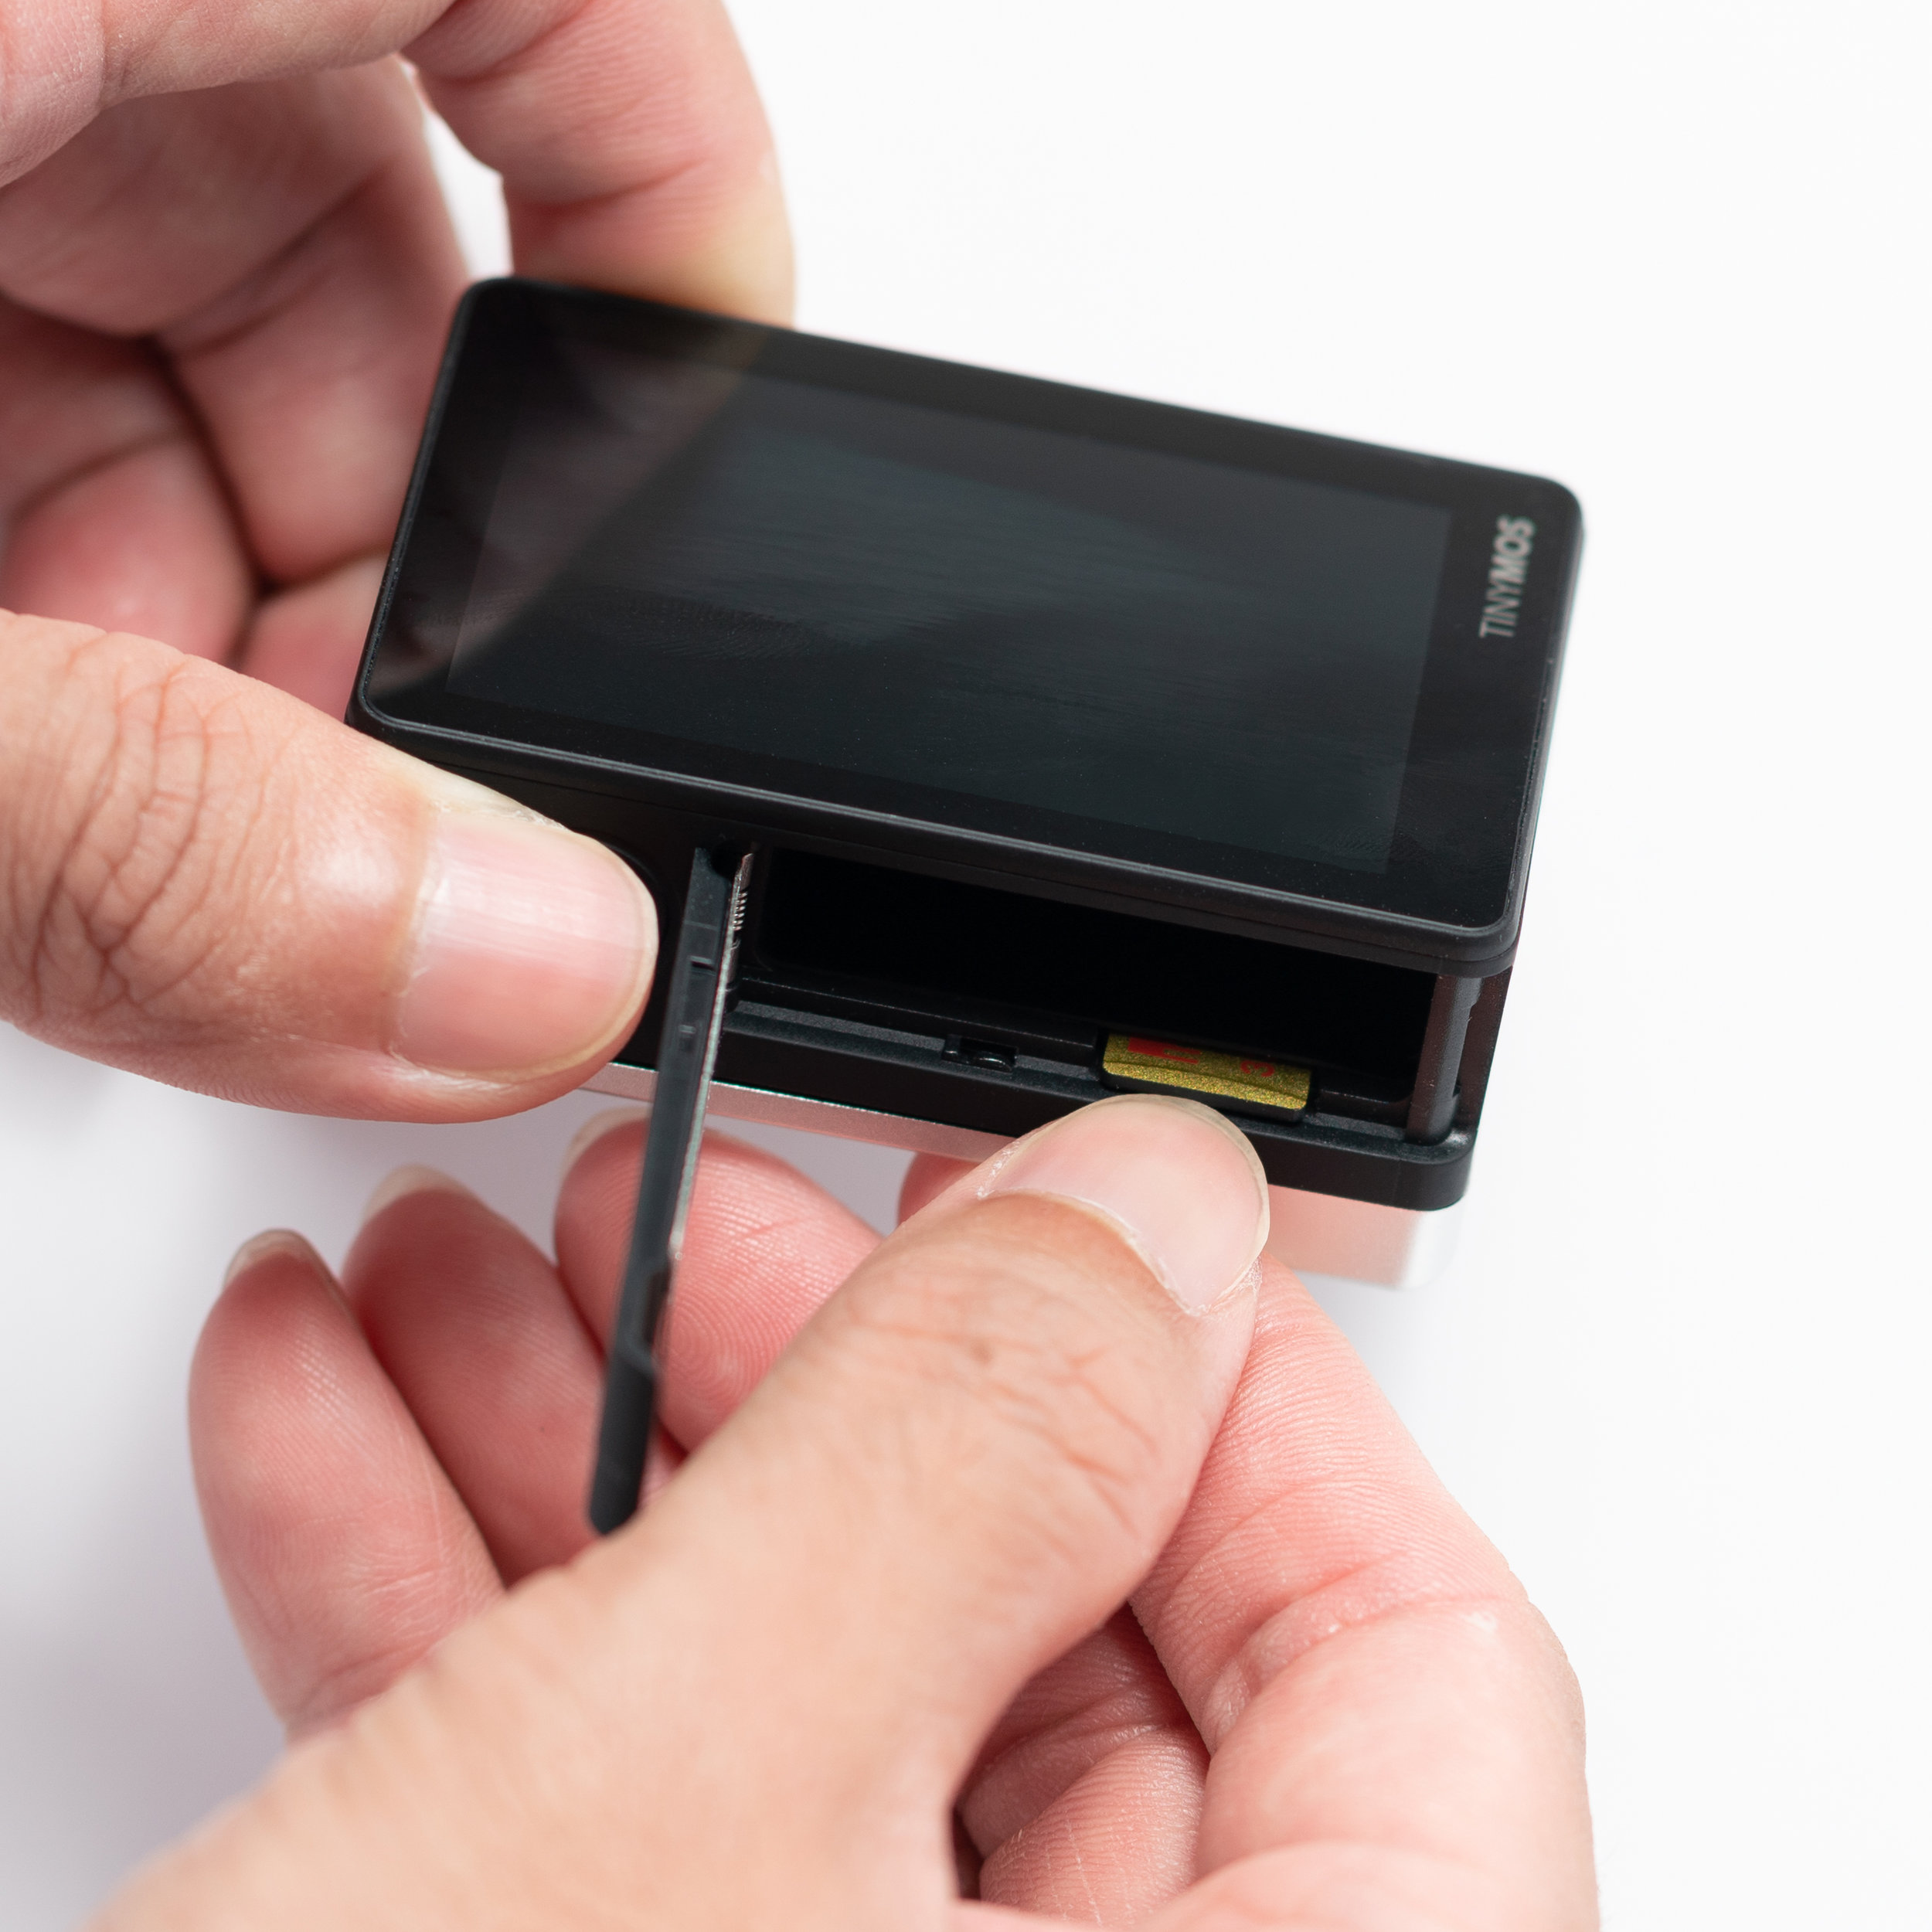 3. Using your fingertips, push the micro-SD card in. To remove, just push it once again.